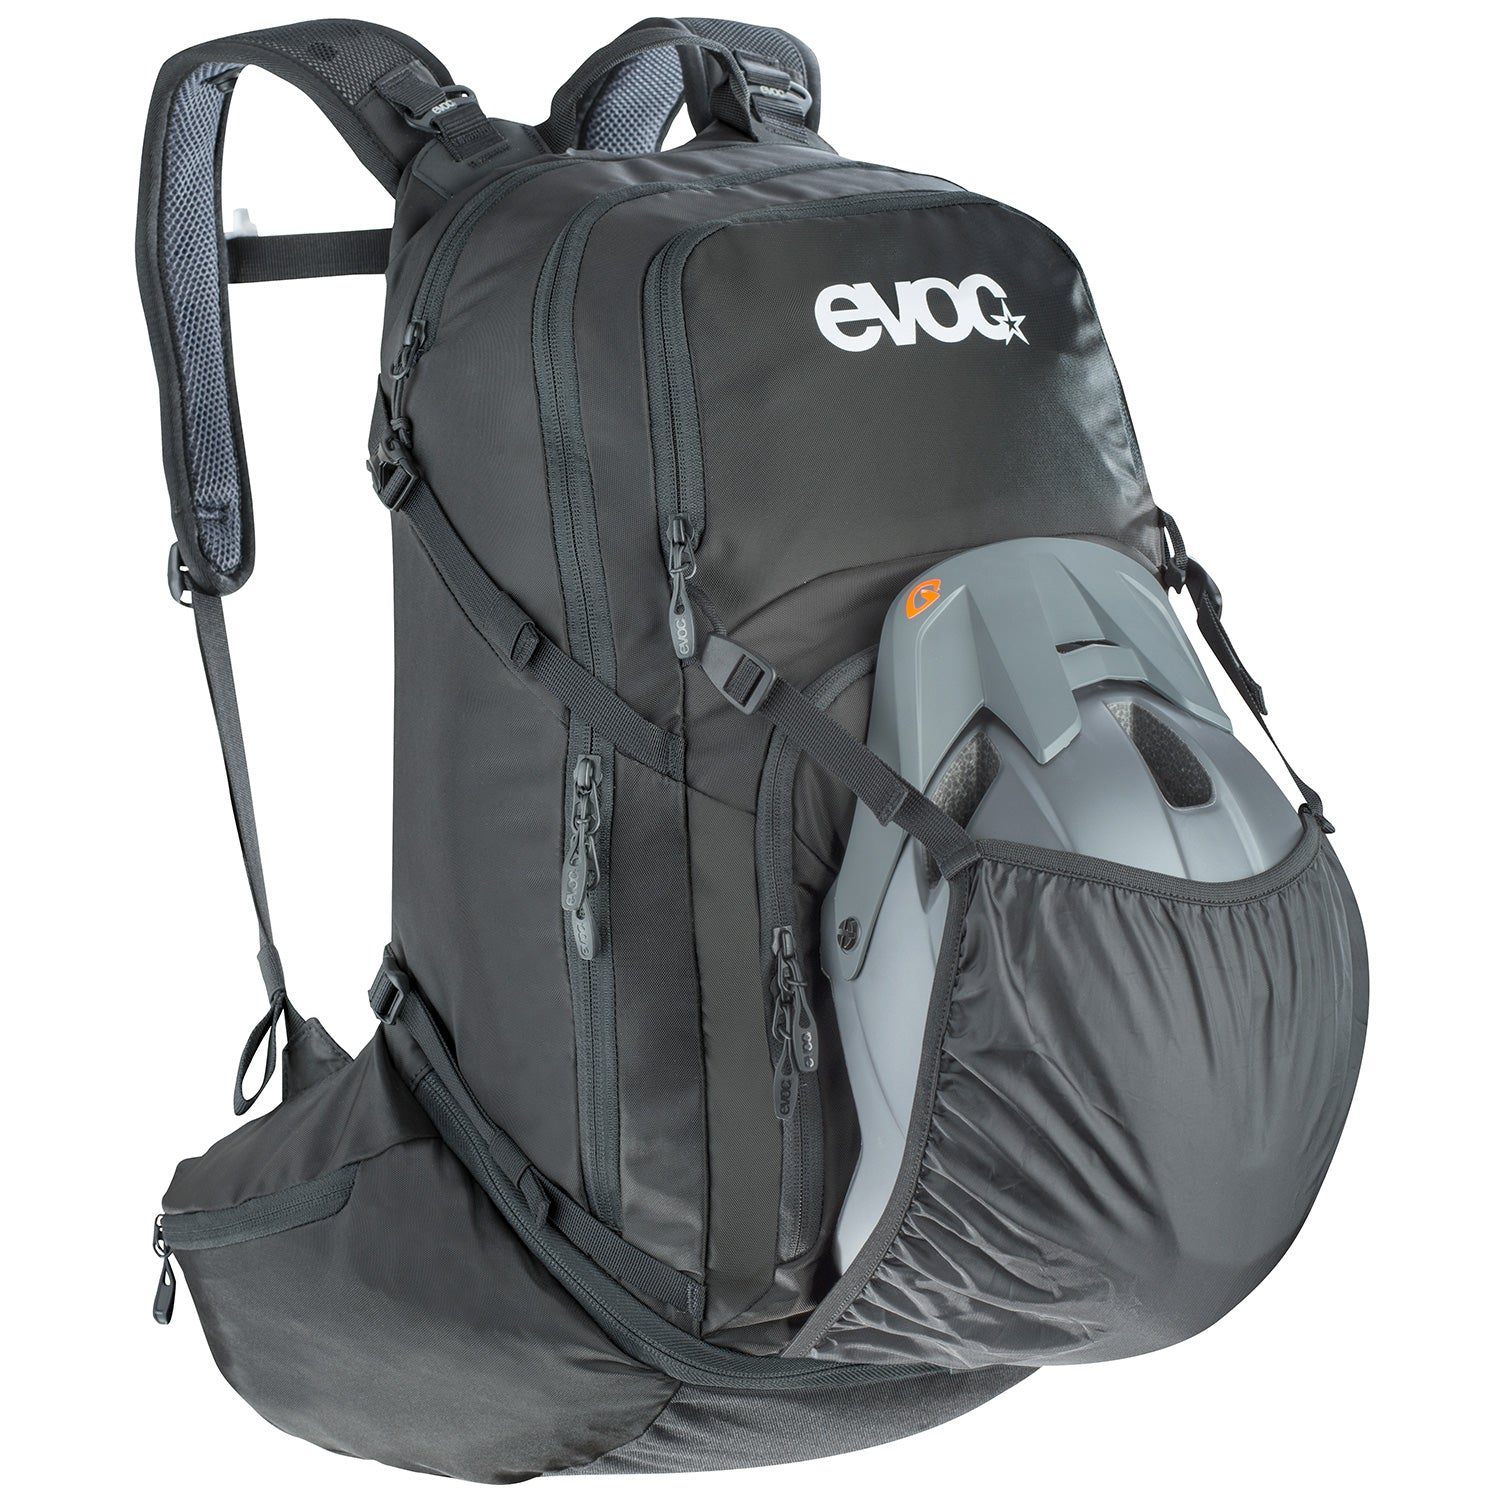 Explorer 26l Pro - Heather Light Olive/Heather Slate by EVOC